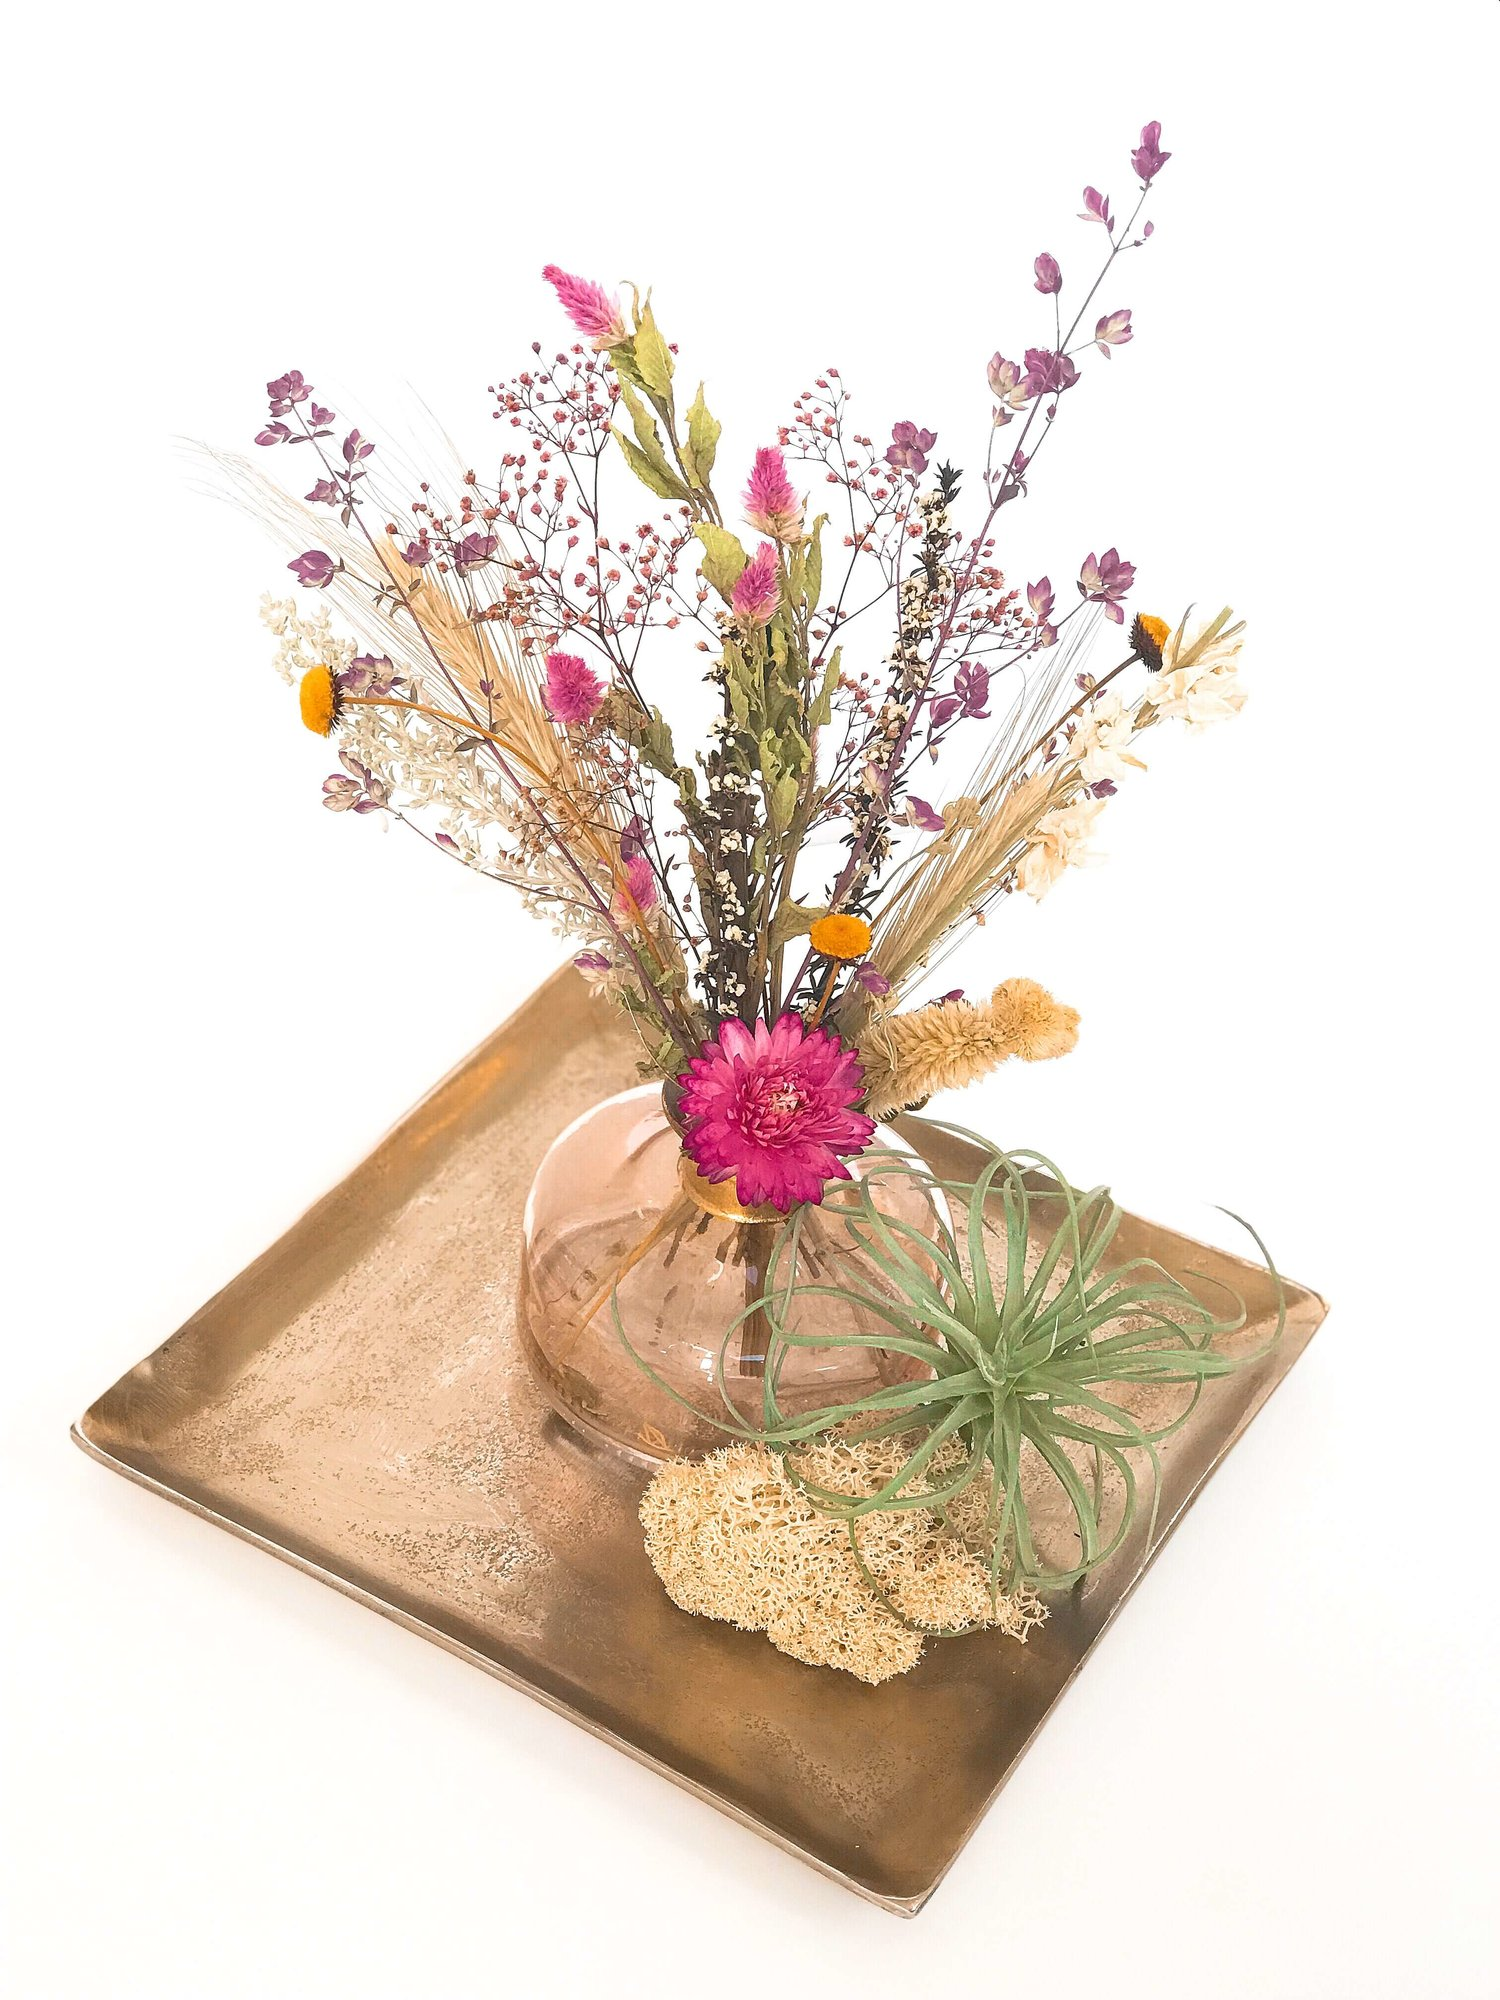 Dried floral budvase